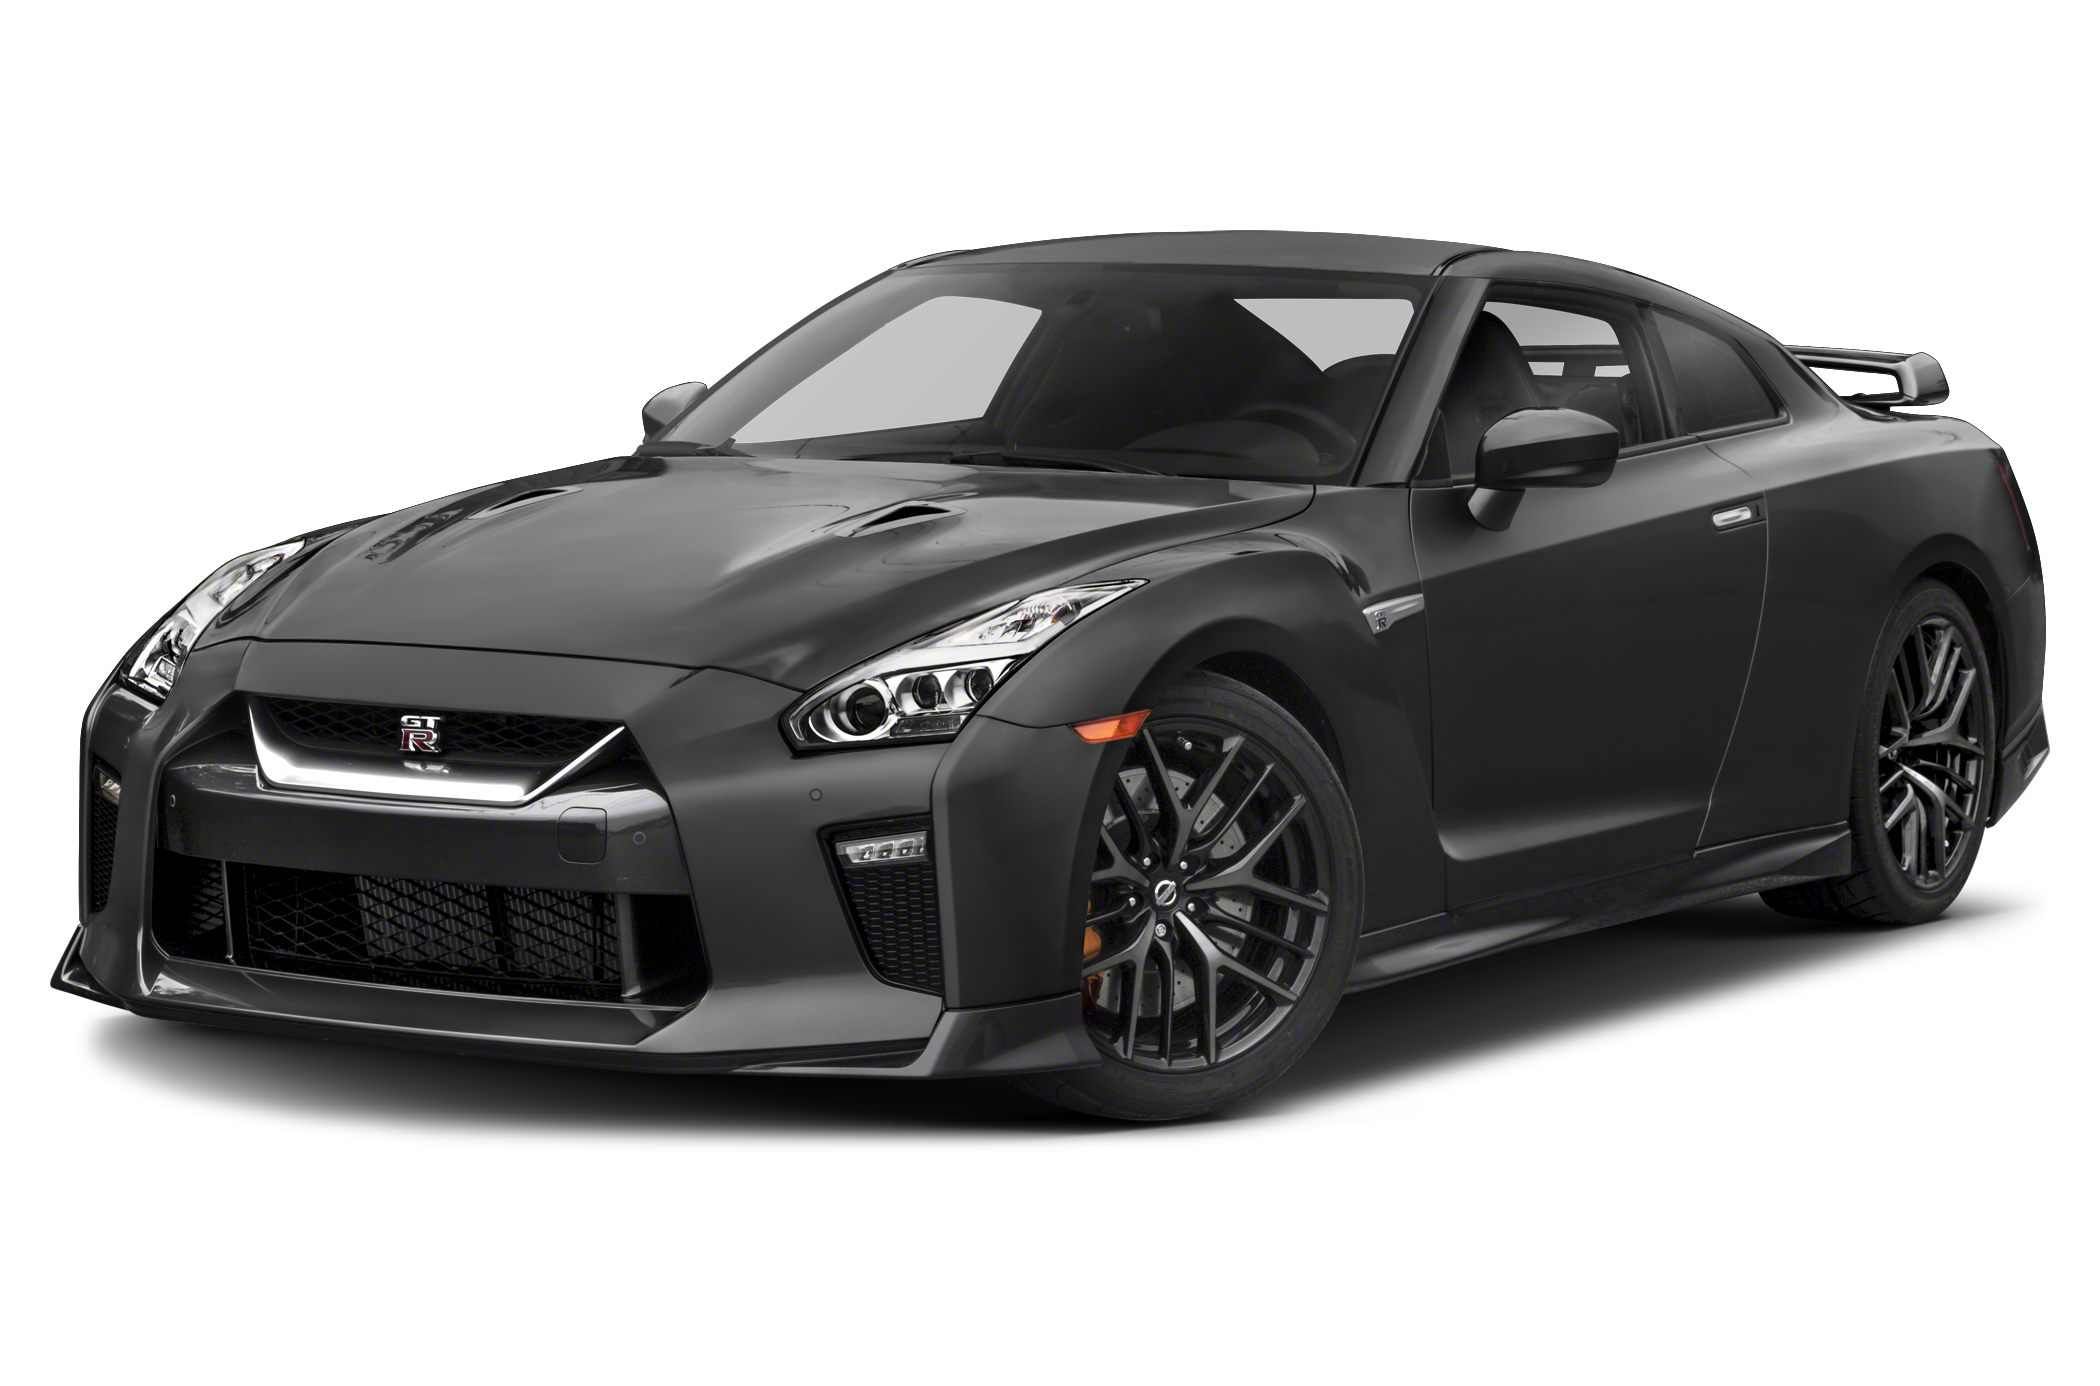 Nissan Of Hickory New And Used Nissan Gt Rs In Hickory Nc Autocom